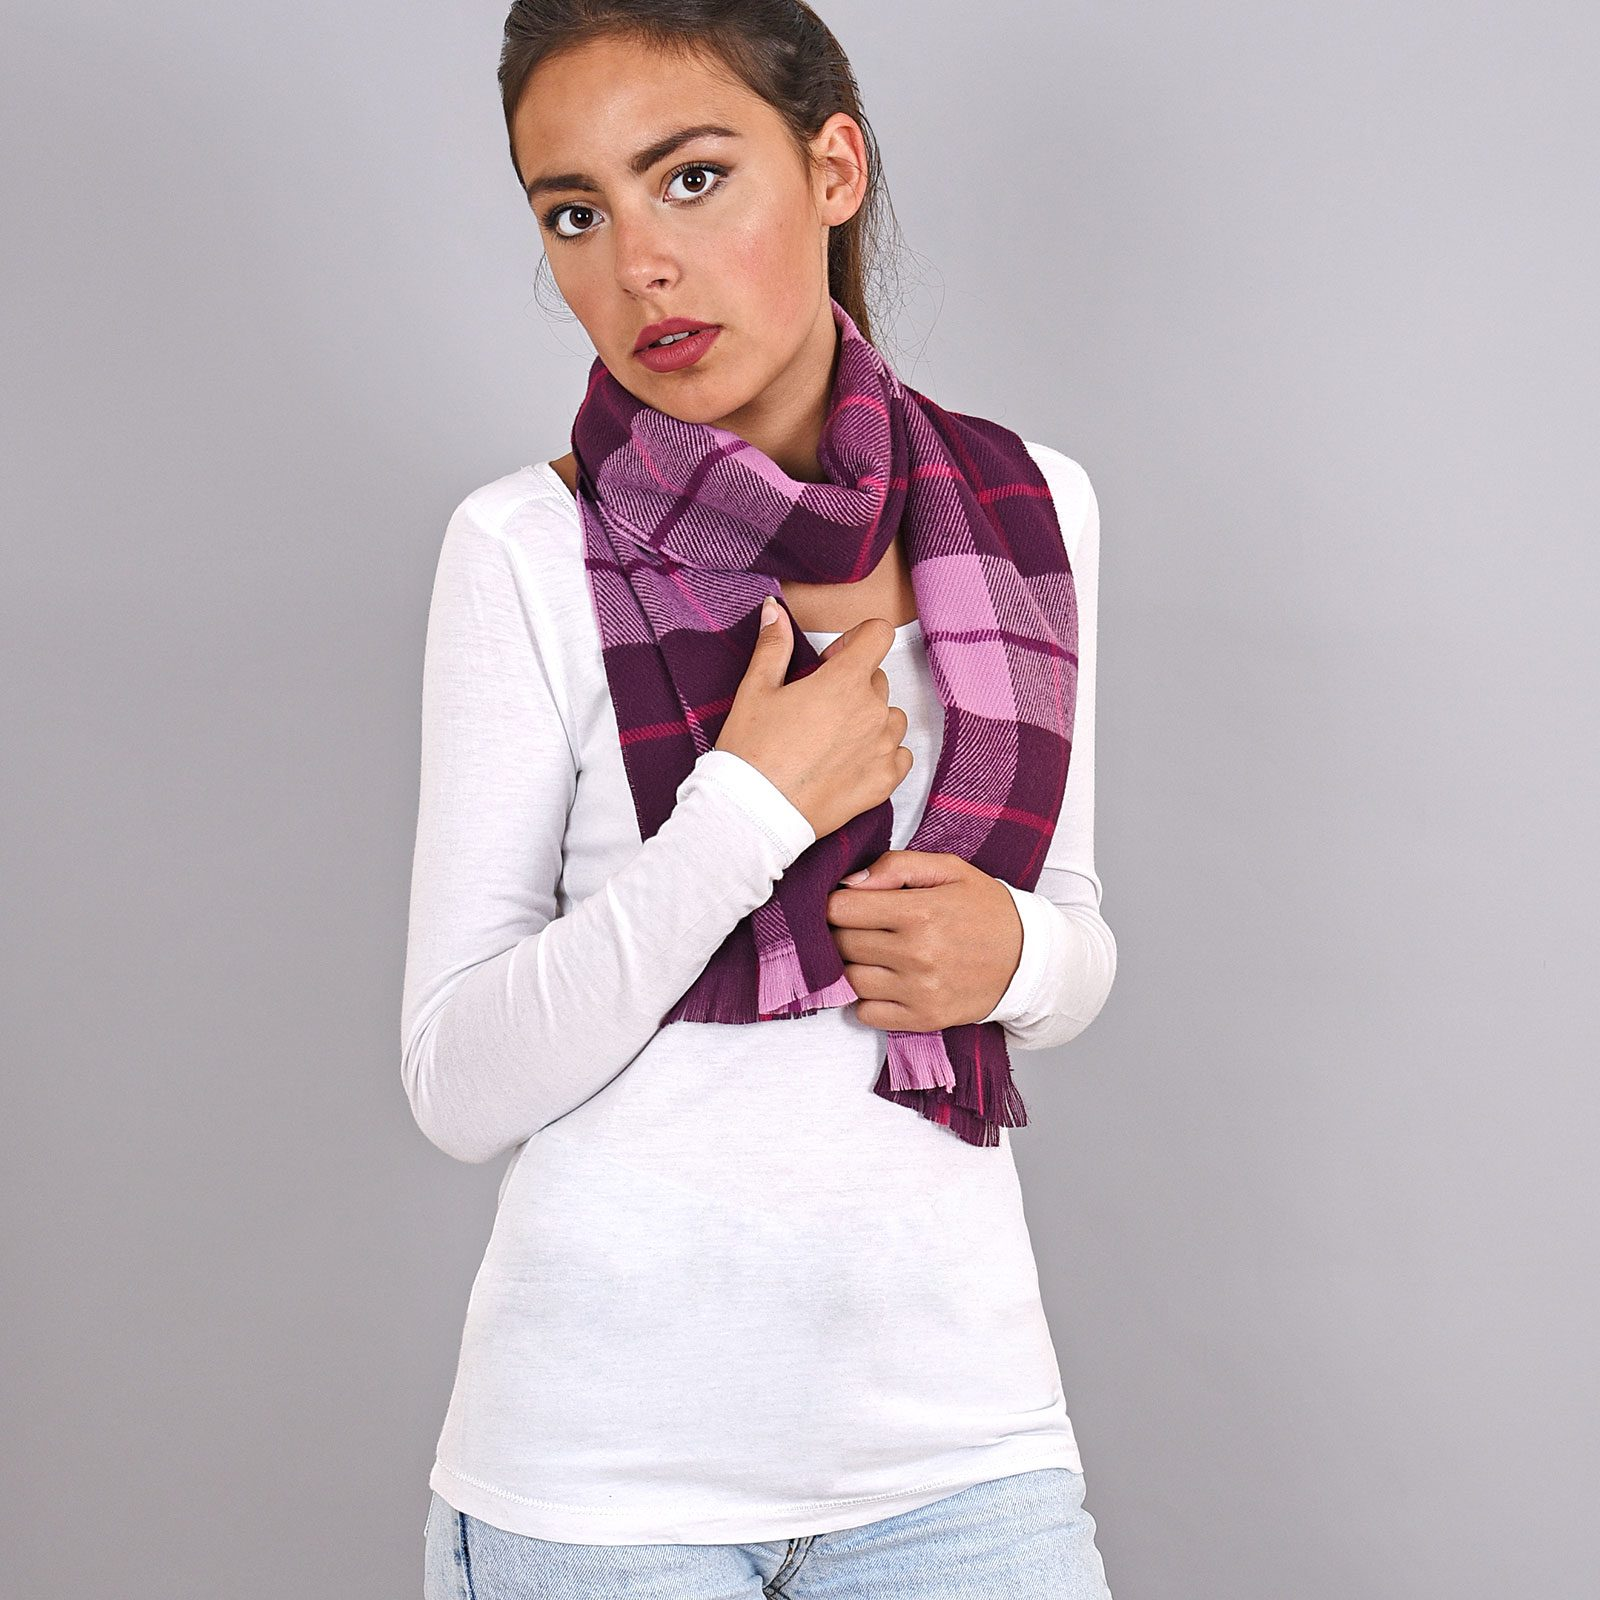 http://lookbook.allee-du-foulard.fr/wp-content/uploads/2019/01/AT-03932-VF16-echarpe-a-carreaux-violet-1600x1600.jpg